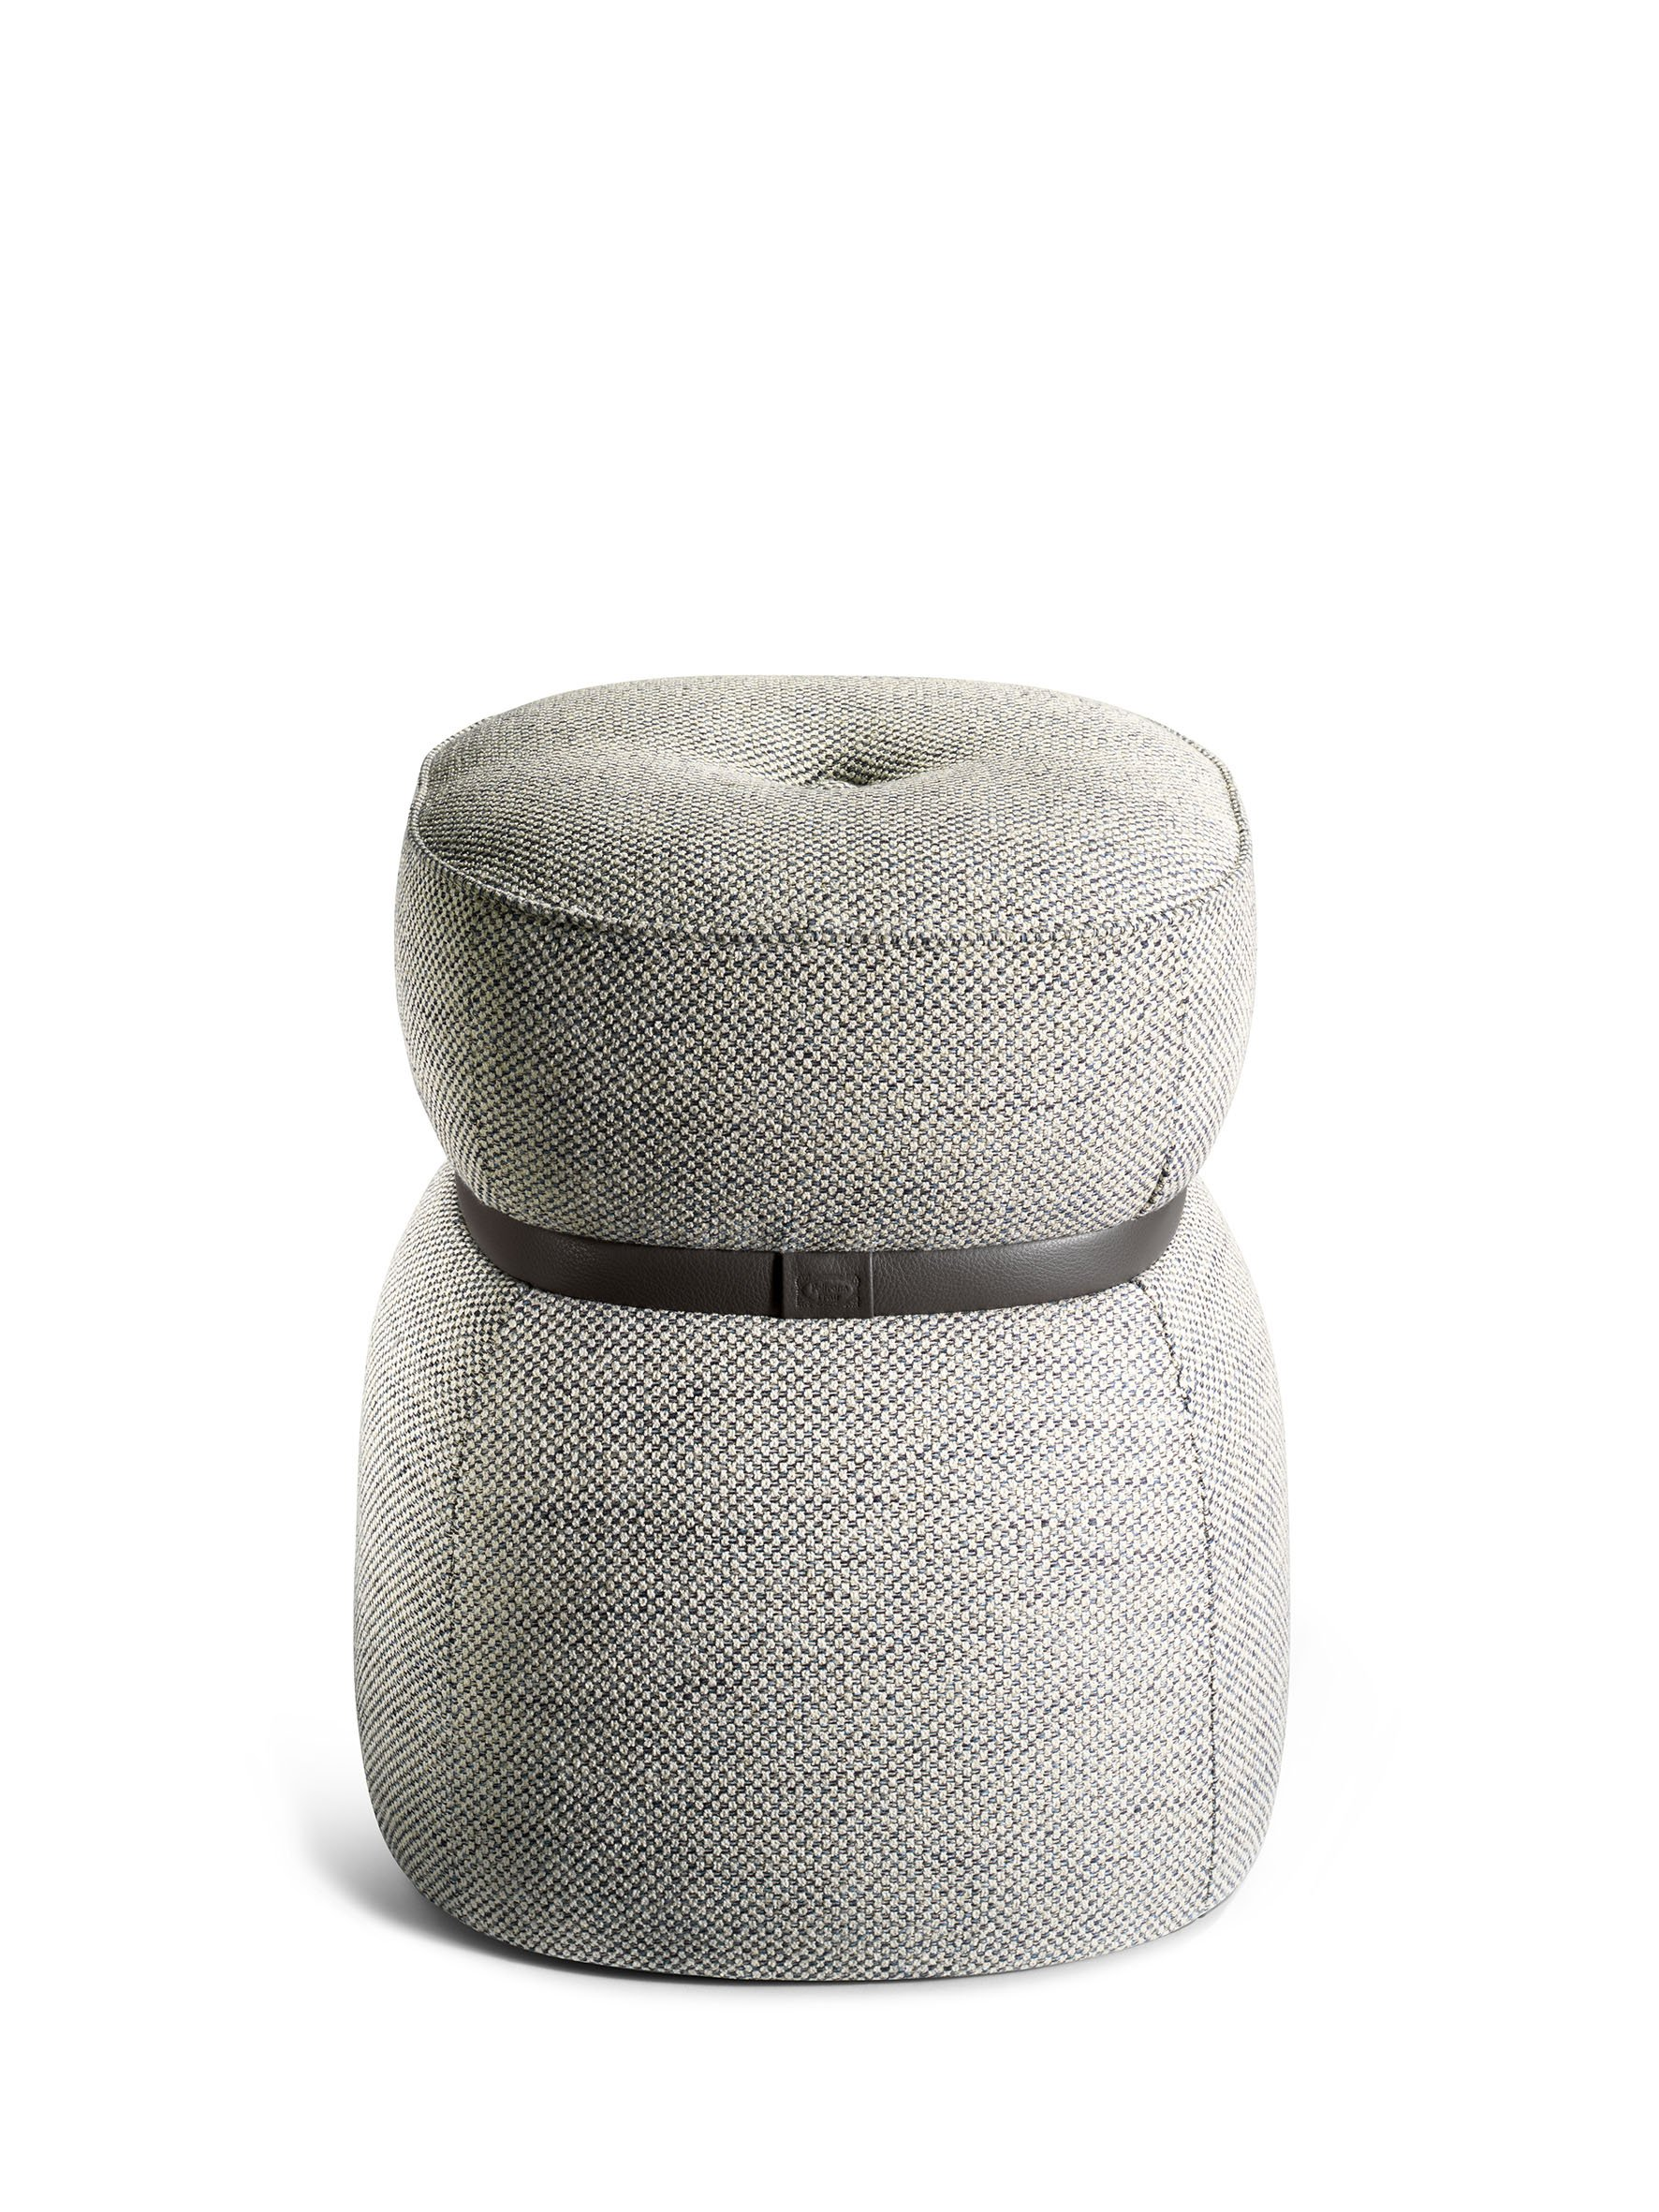 Lepli fabric stool the collection sofa and armchairs for Sofa stool design